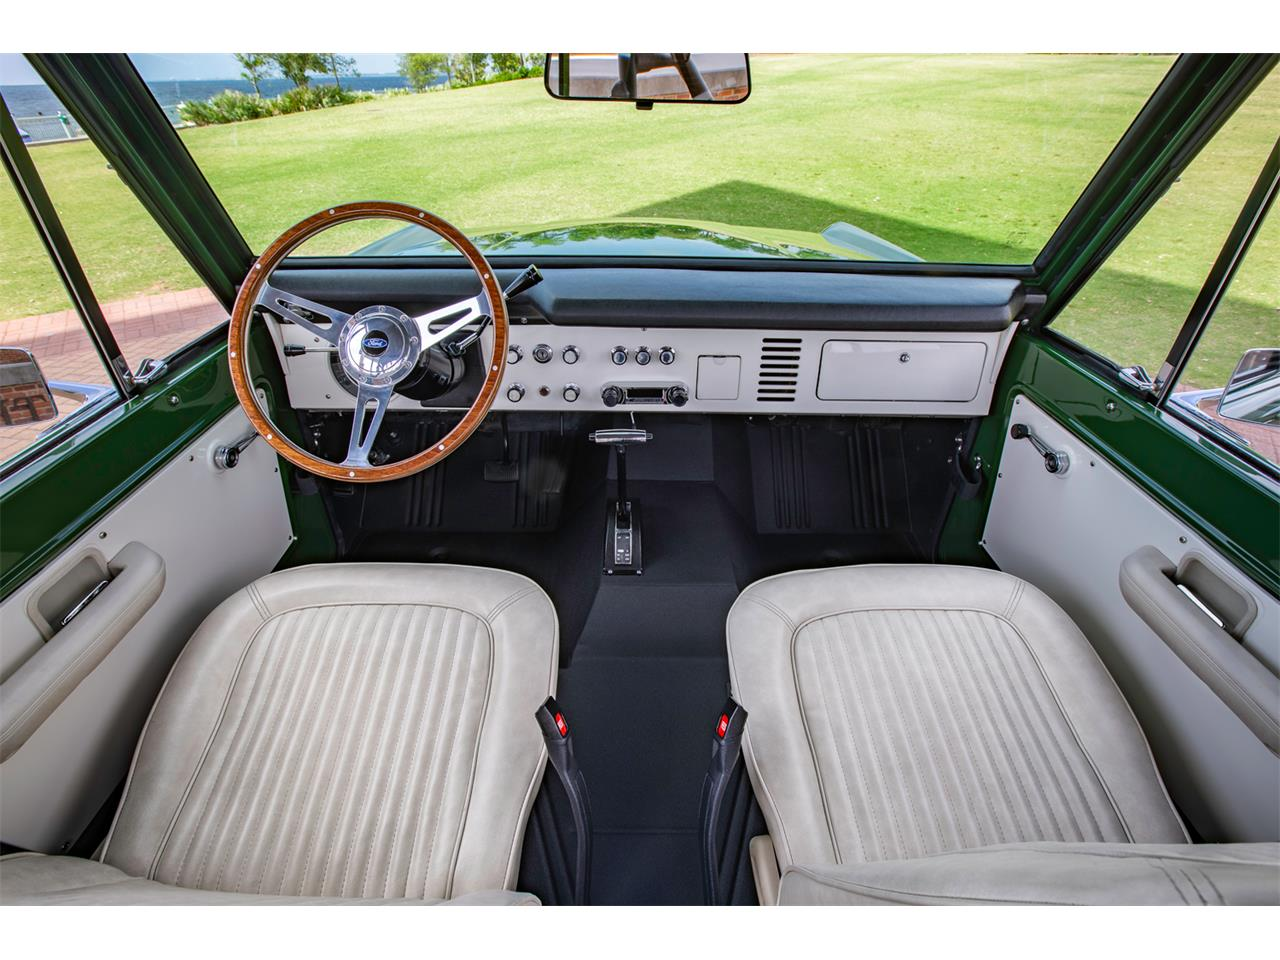 Large Picture of '71 Ford Bronco located in Florida - $139,900.00 - Q4JS